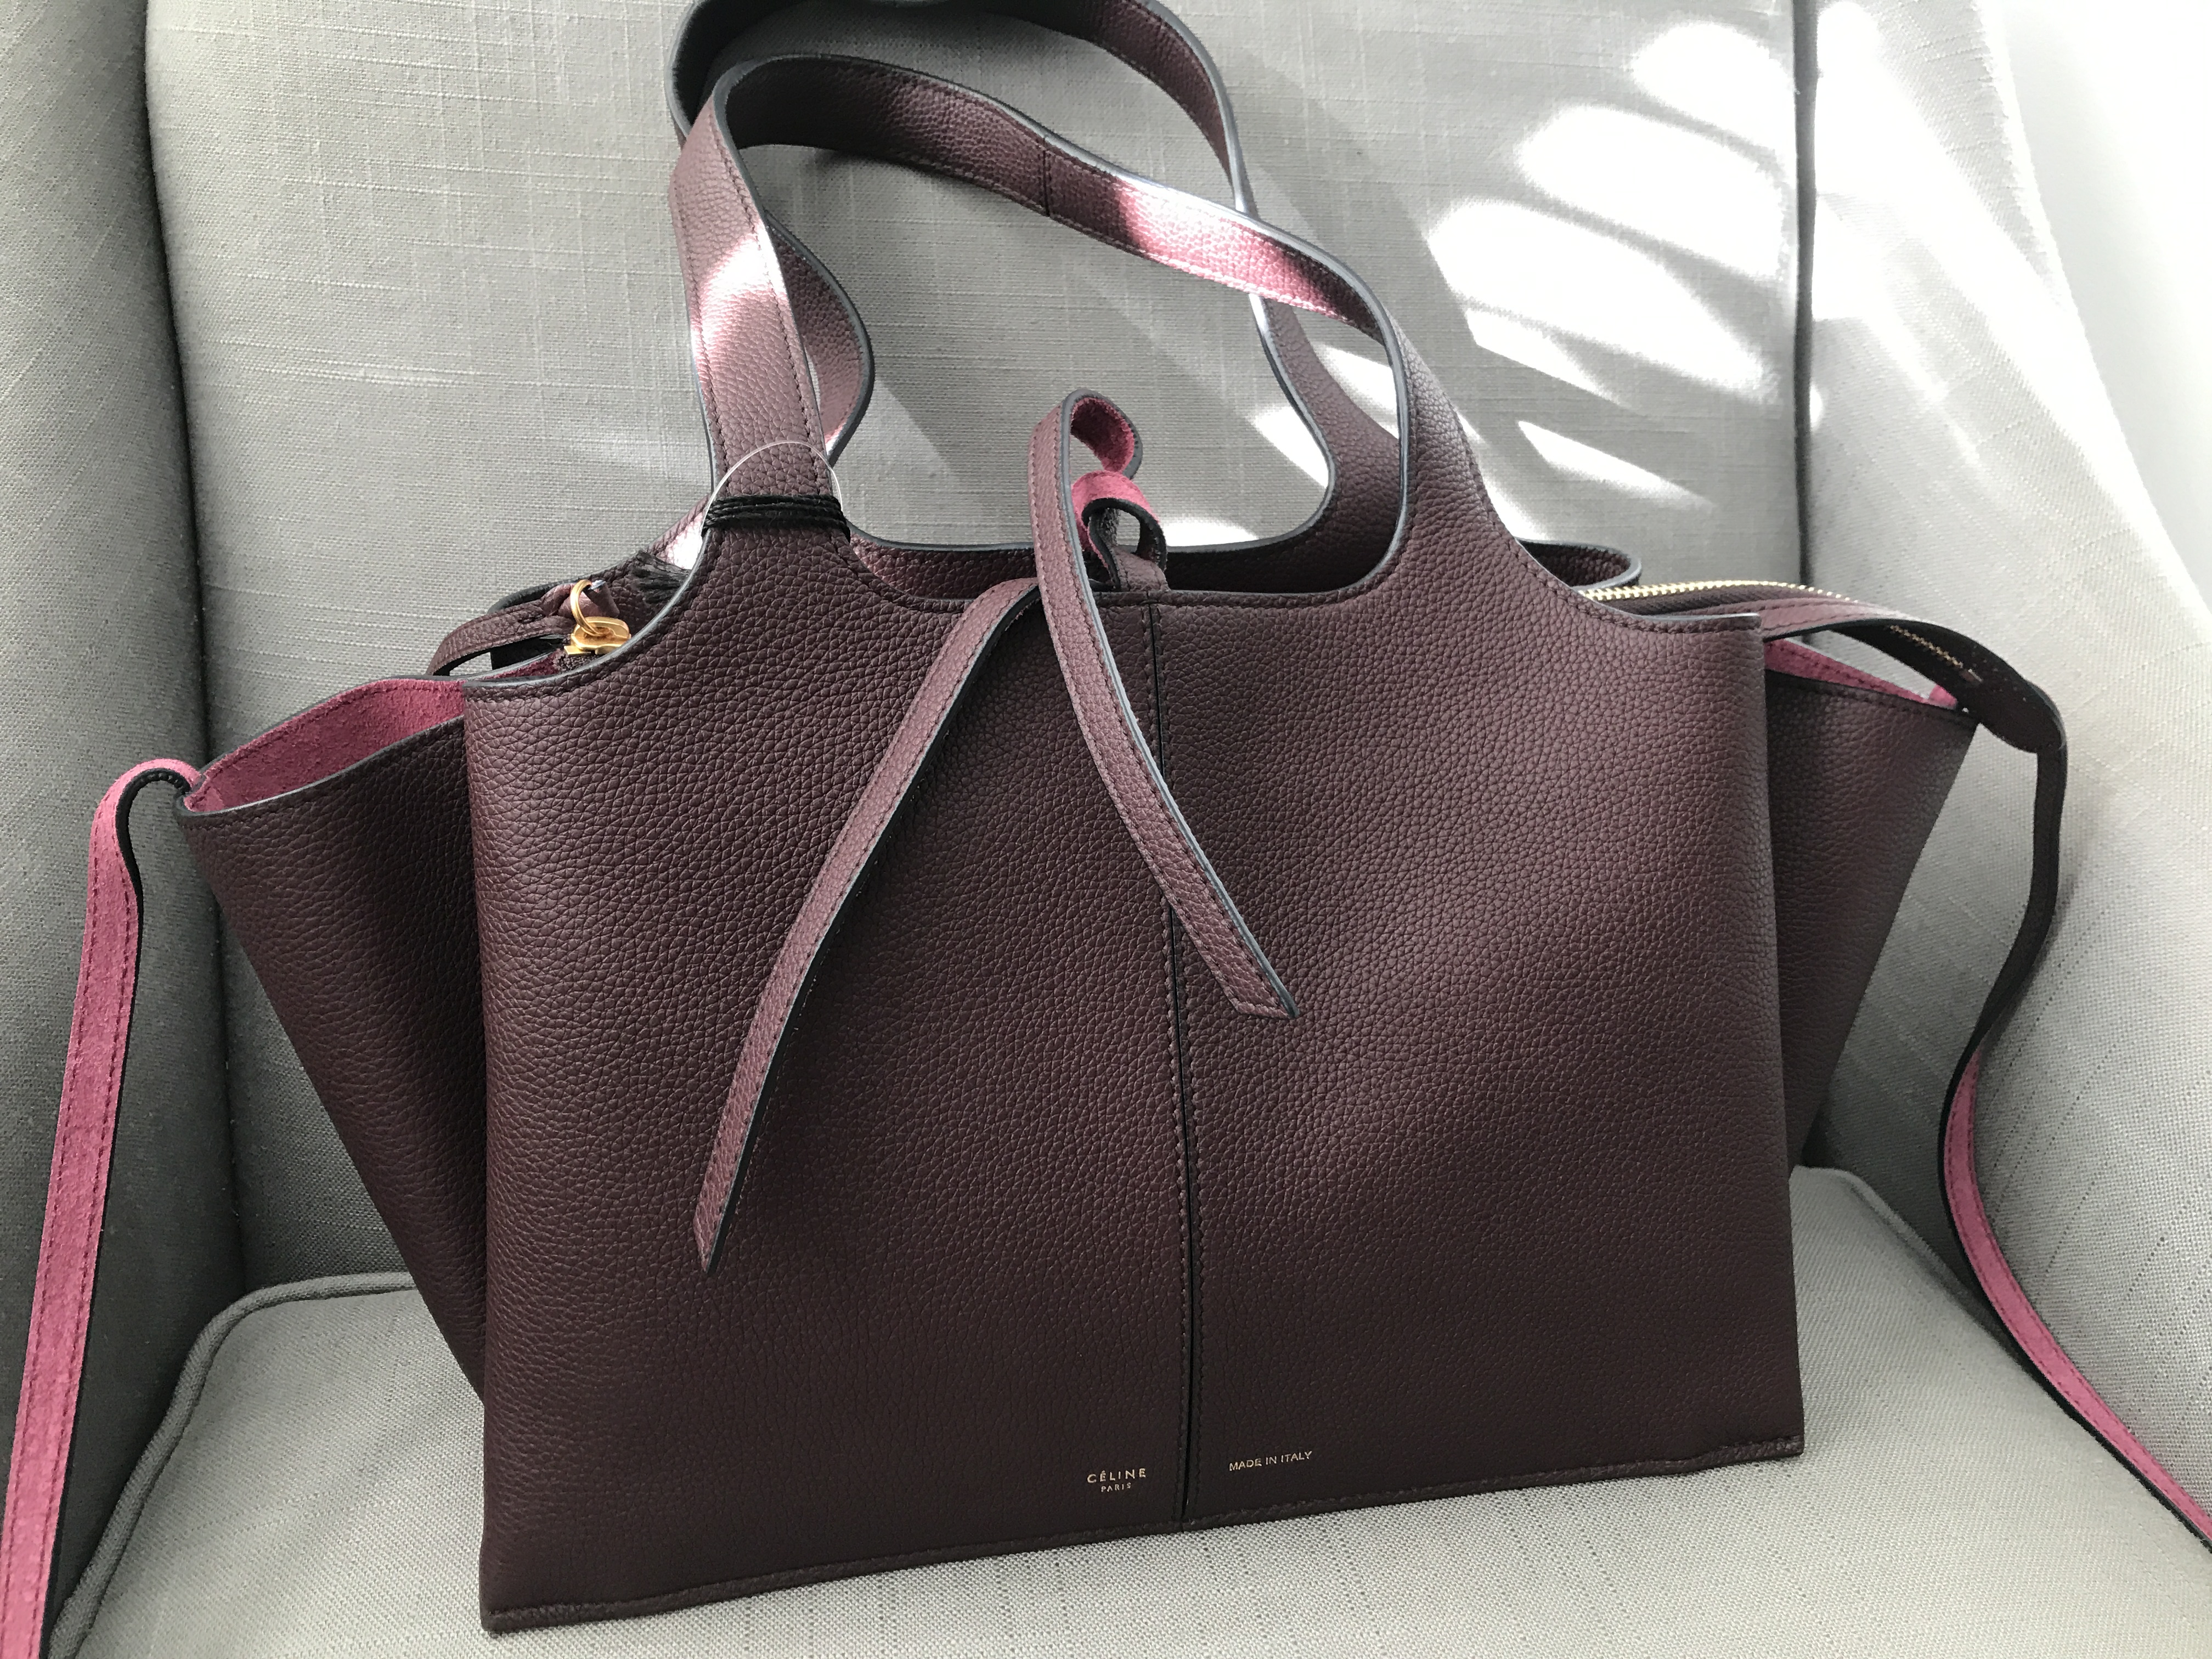 d90554fab1 just in  celine trifold bag